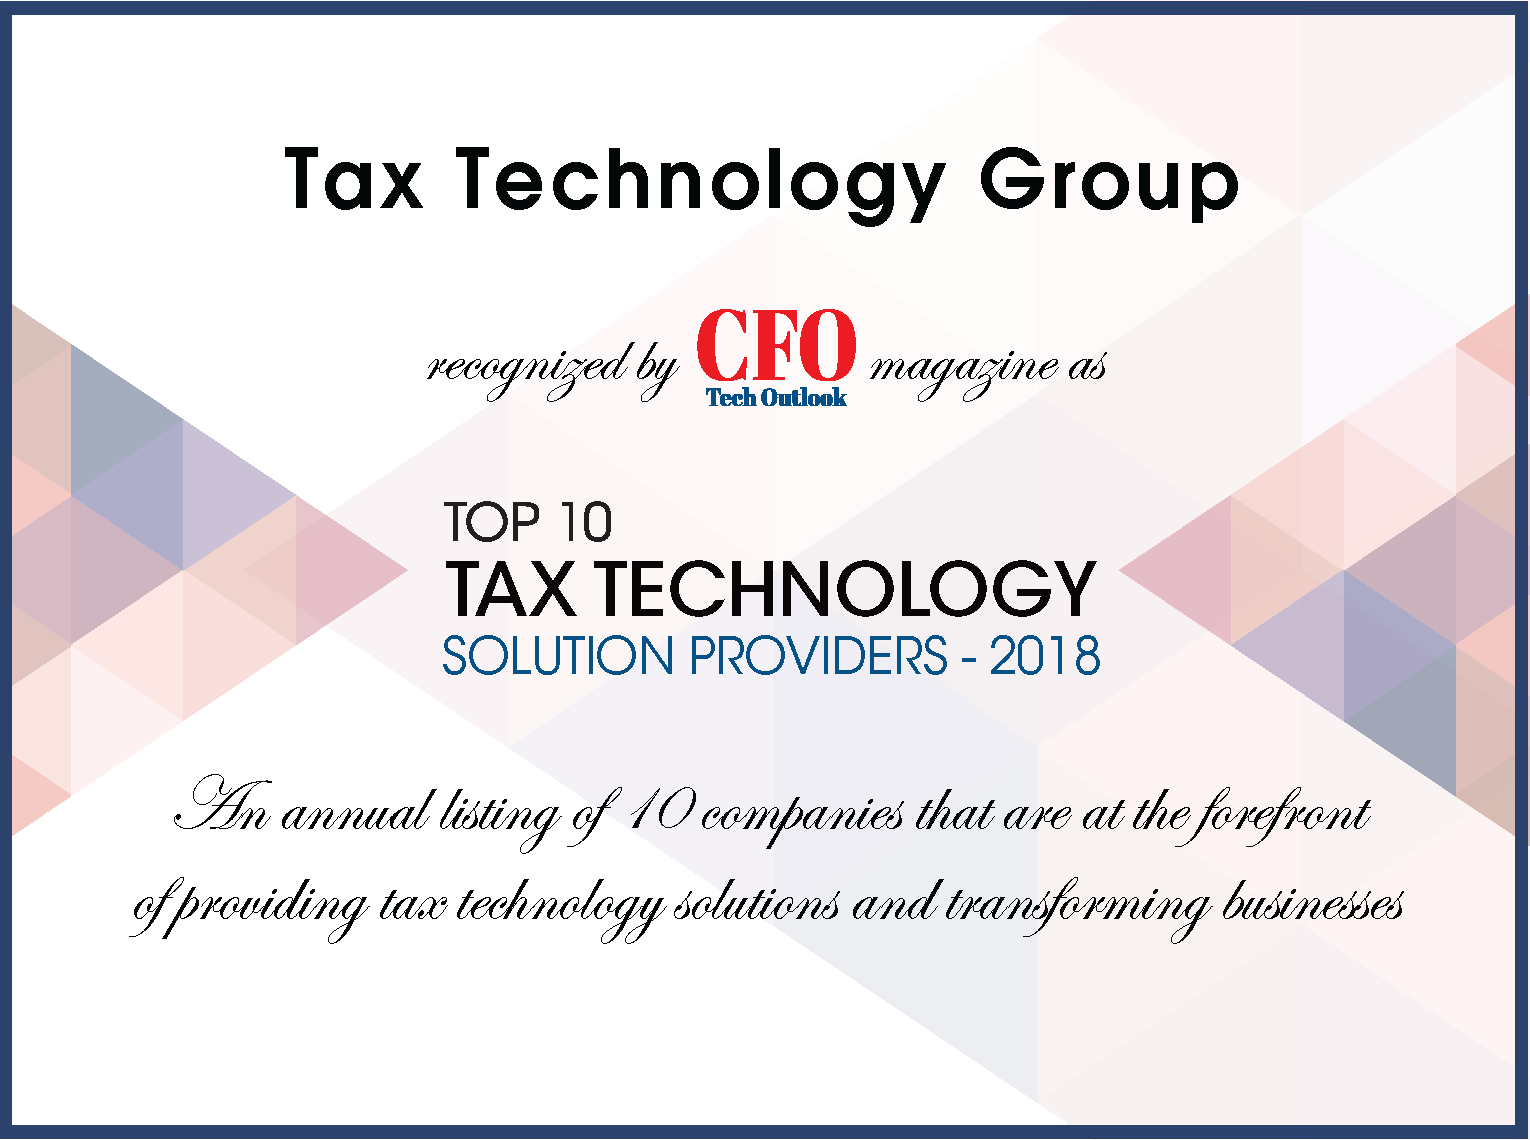 Recently Recognized - by CFO Tech Outlook magazine as a Top 10 Tax Technology Solution Provider.